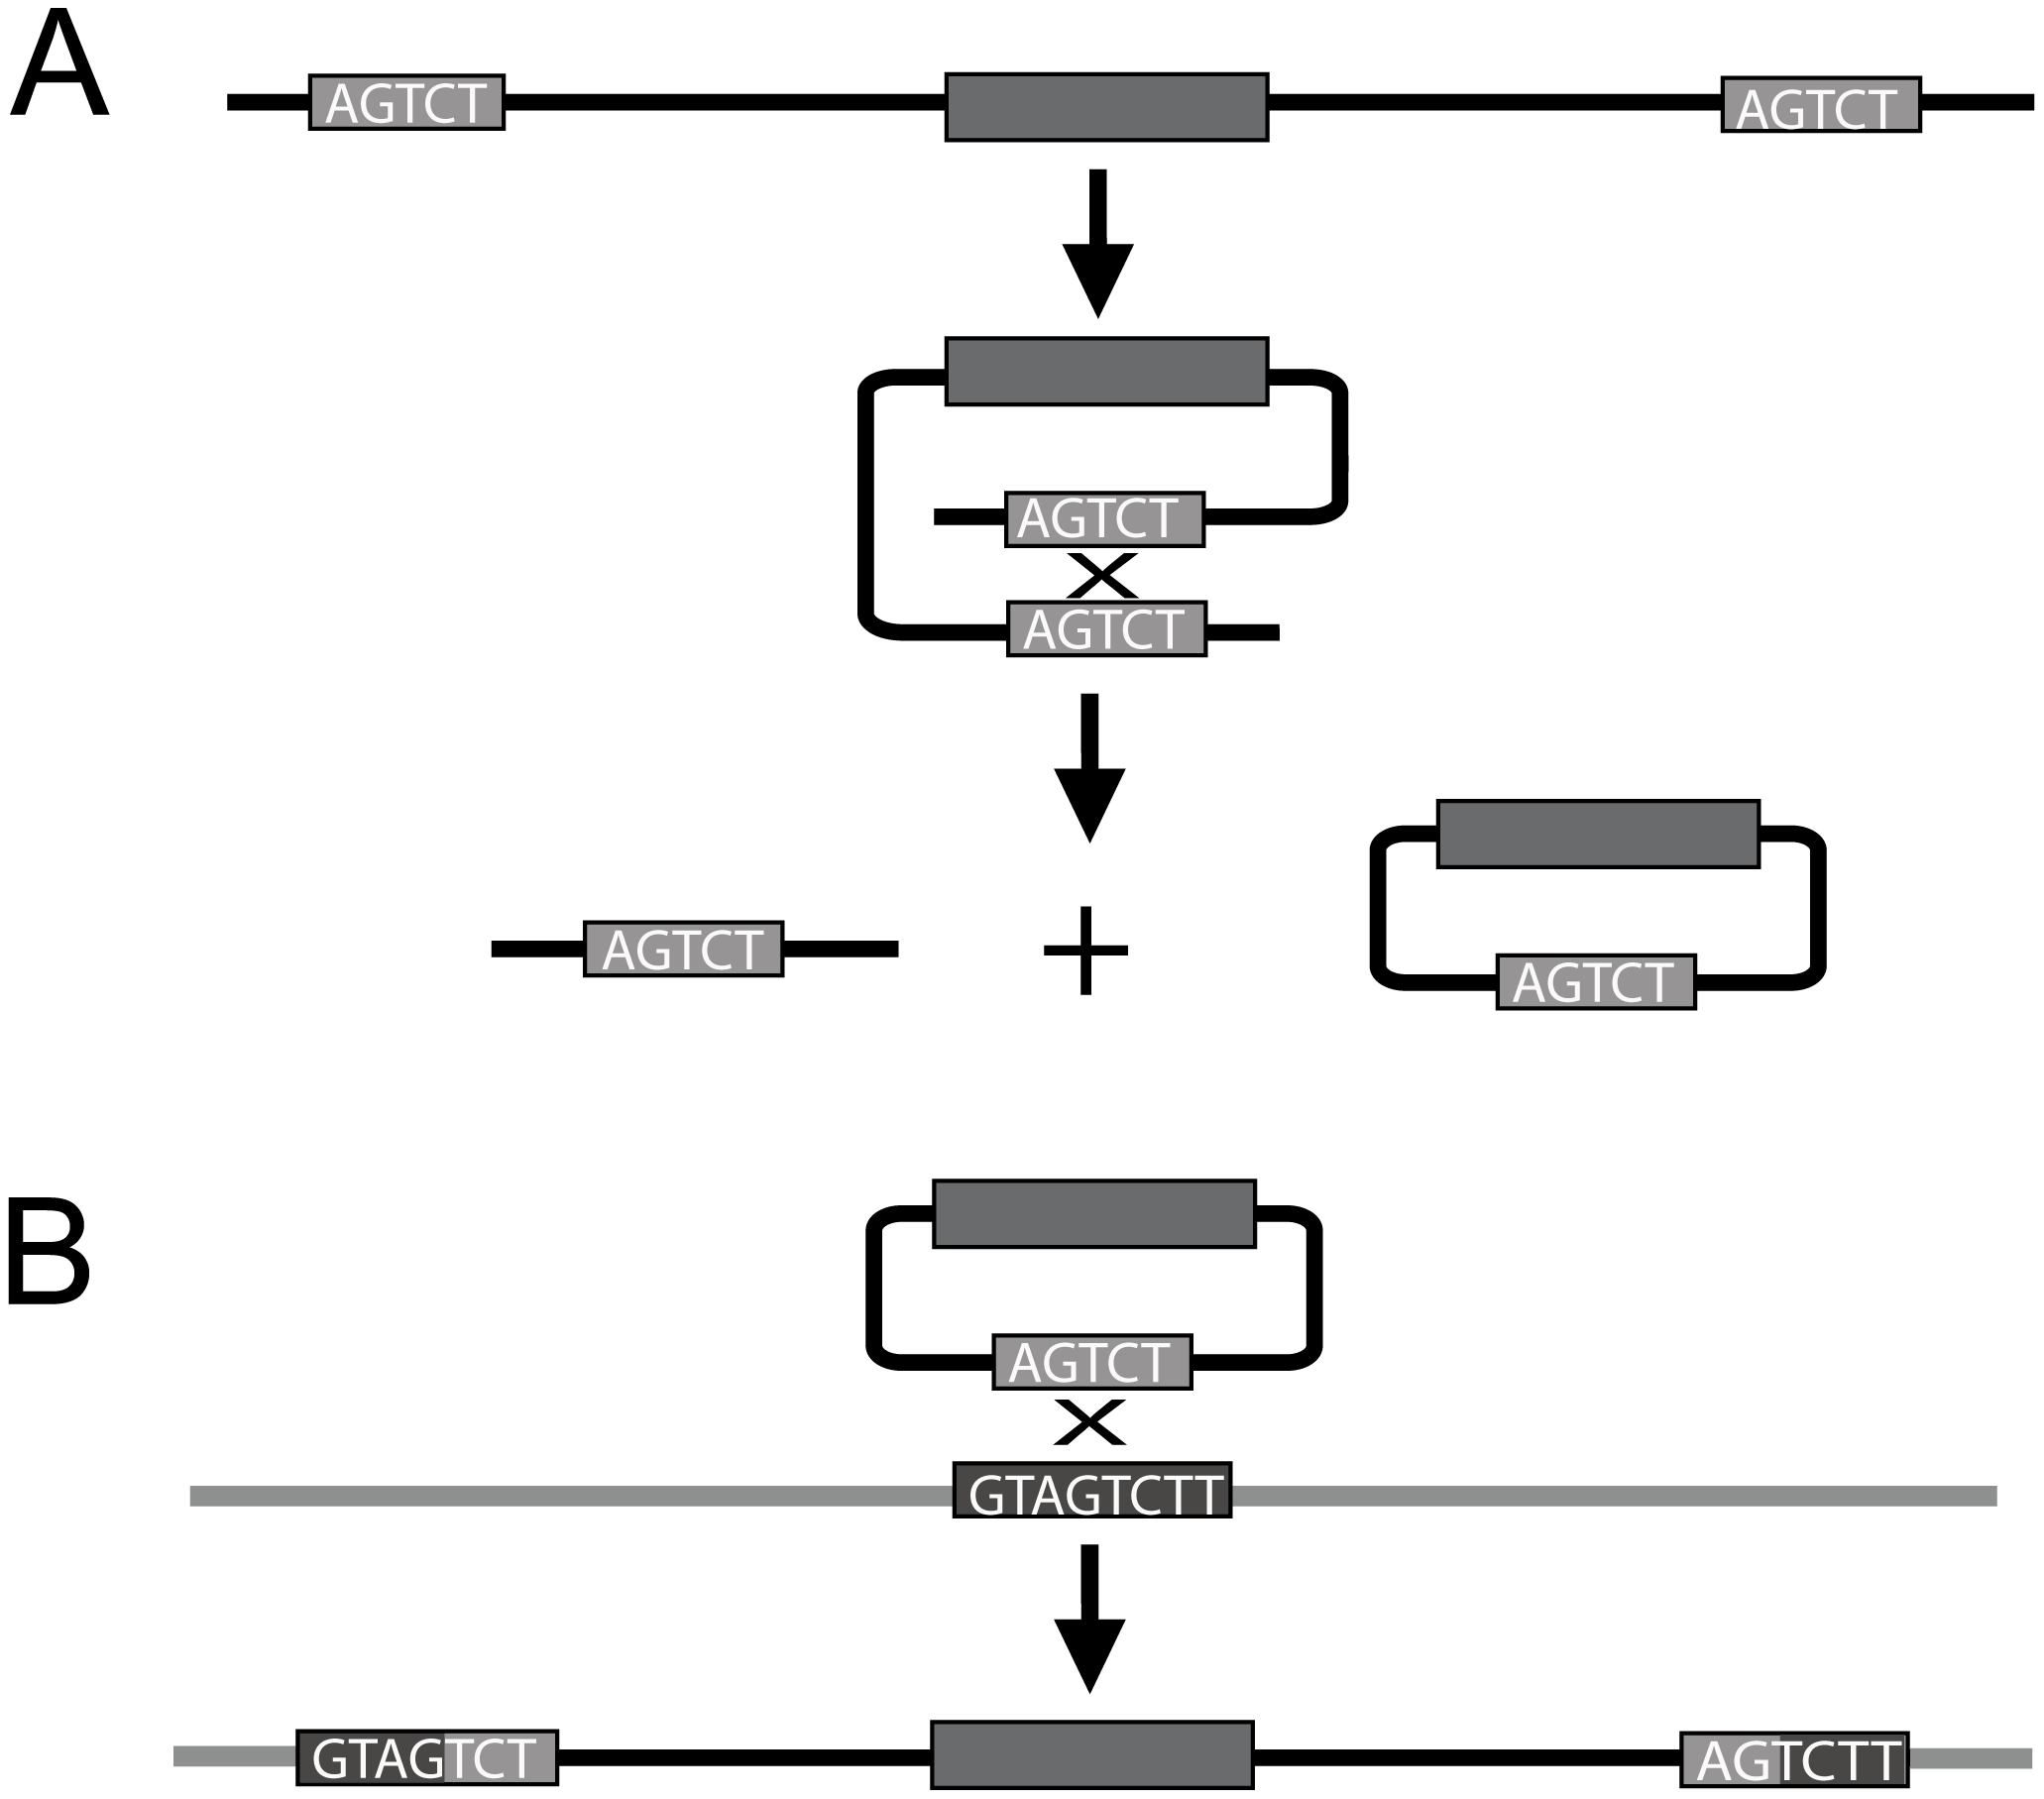 Diagram depicting intrachromosomal recombination and insertion via recombination of homologous sequence.